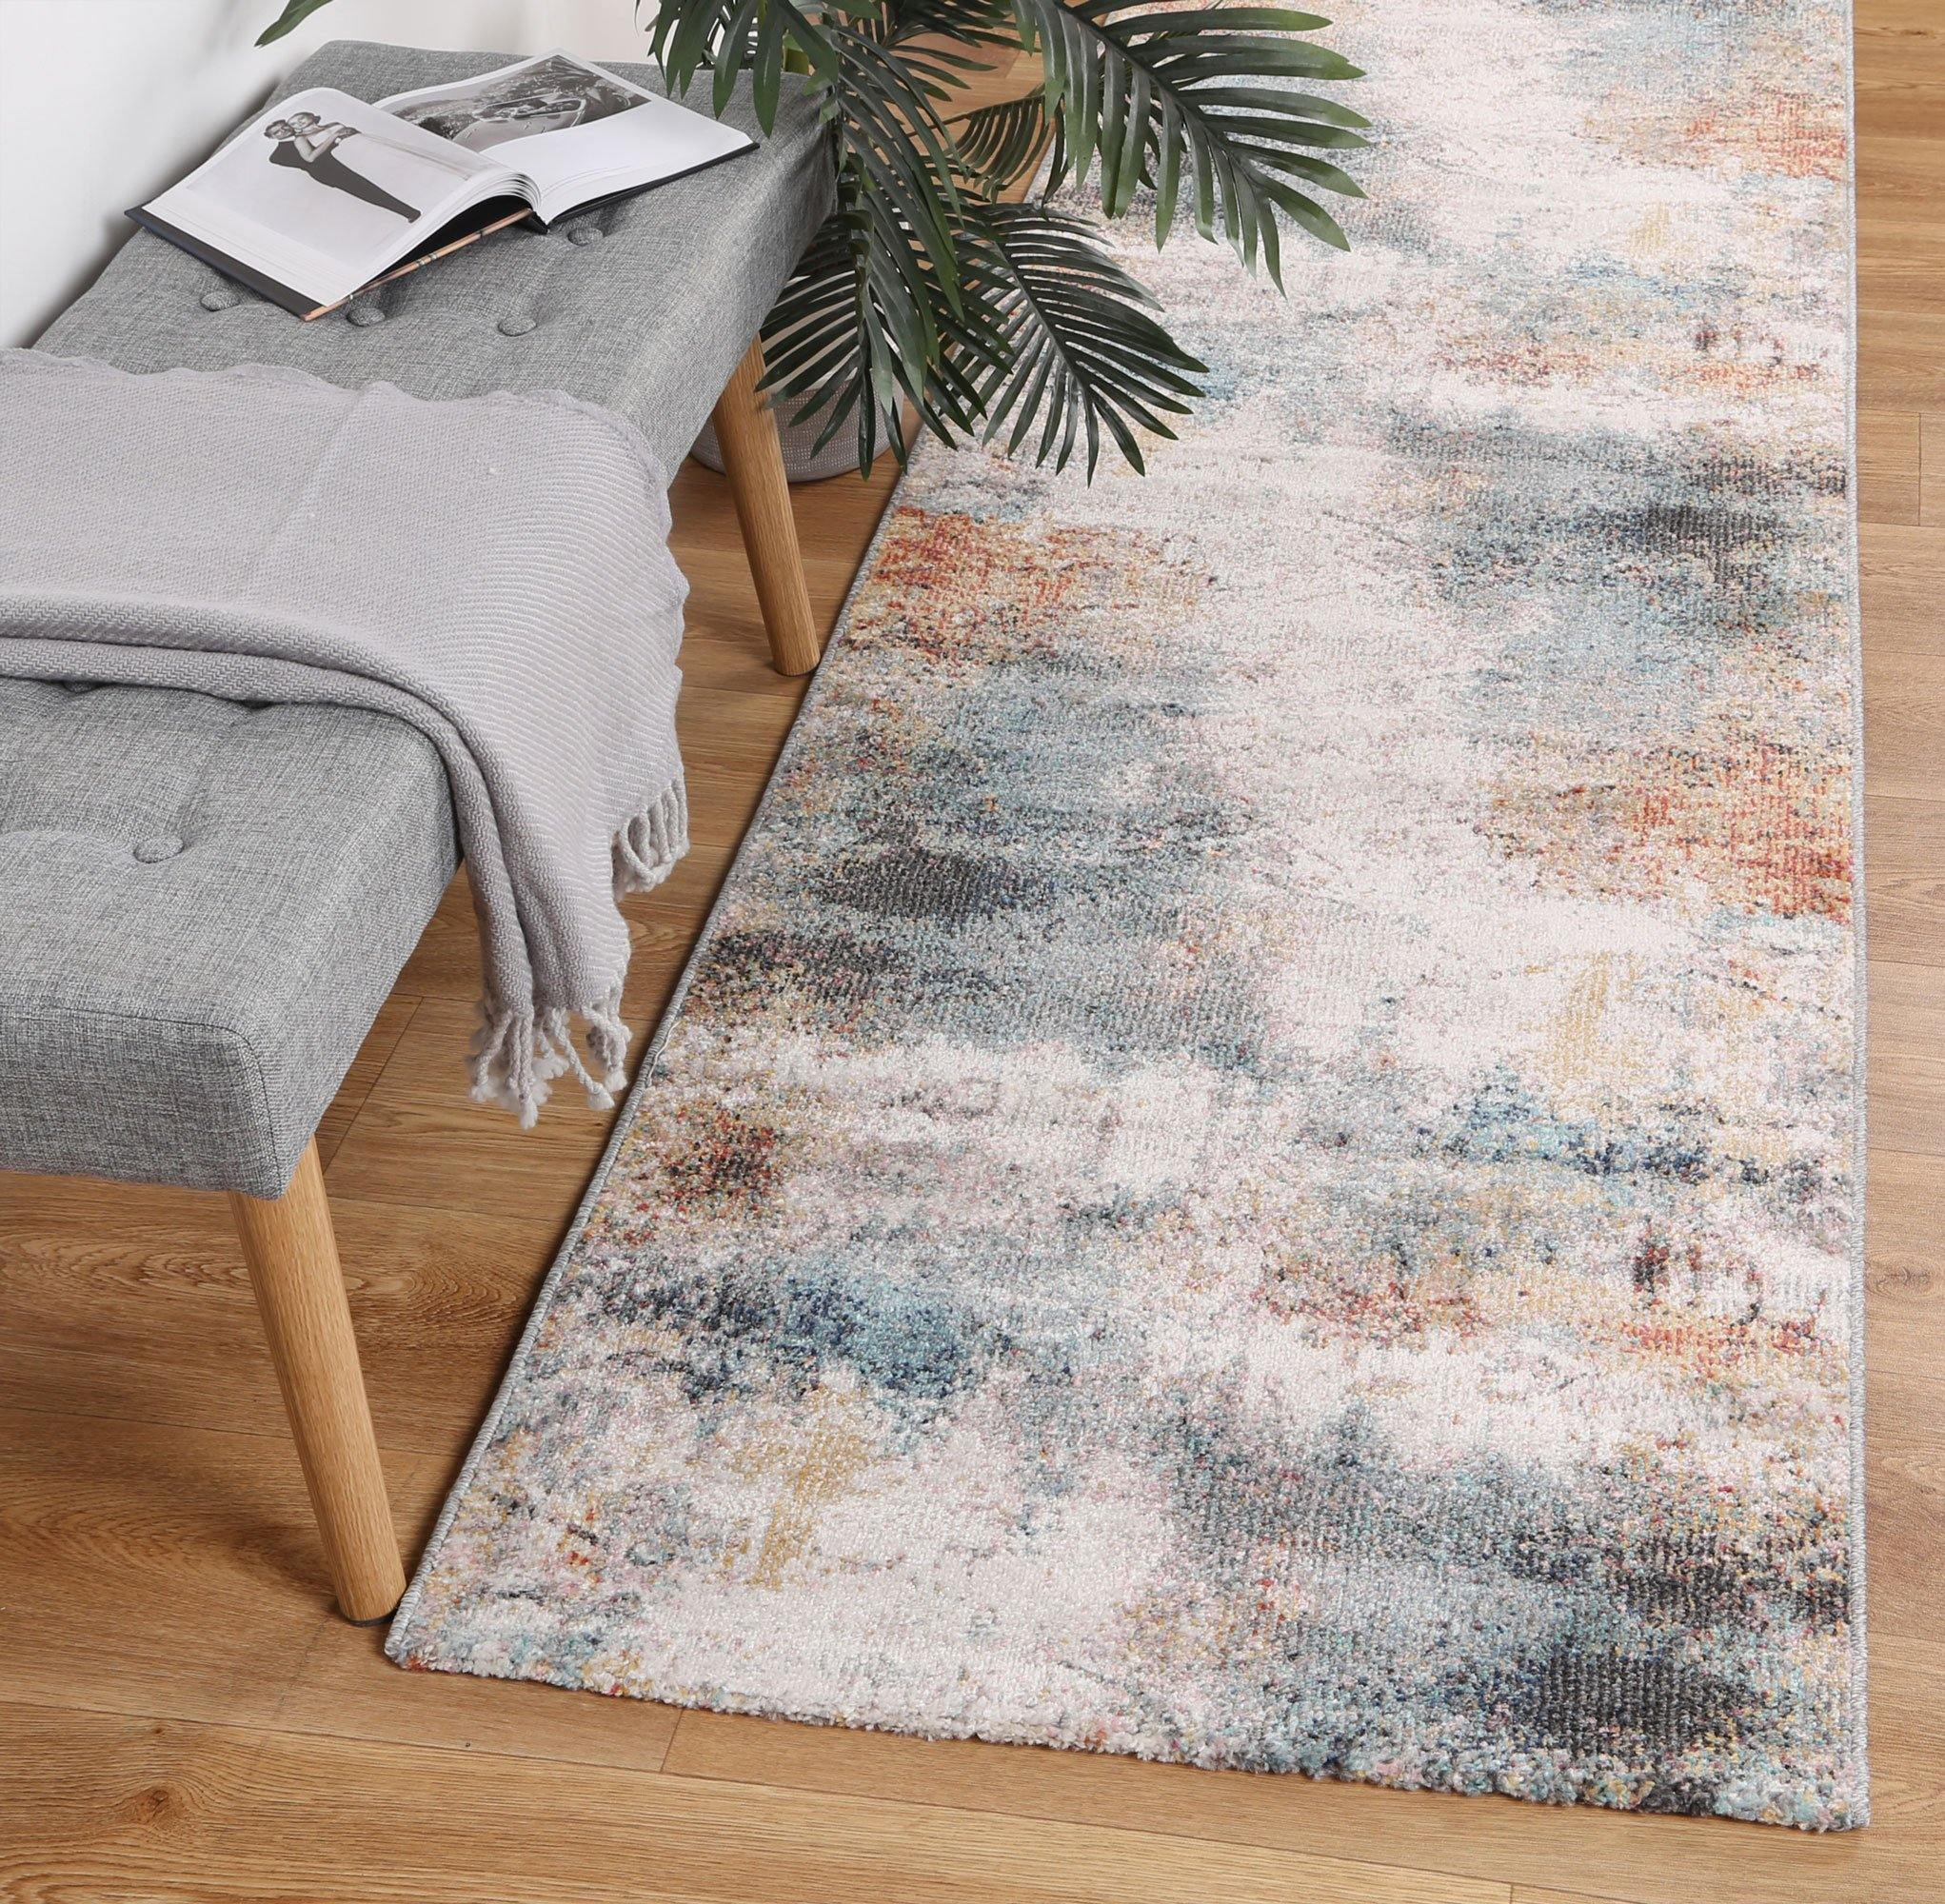 Clara Aveza Abstract Soft Multi Rug - The Rugs